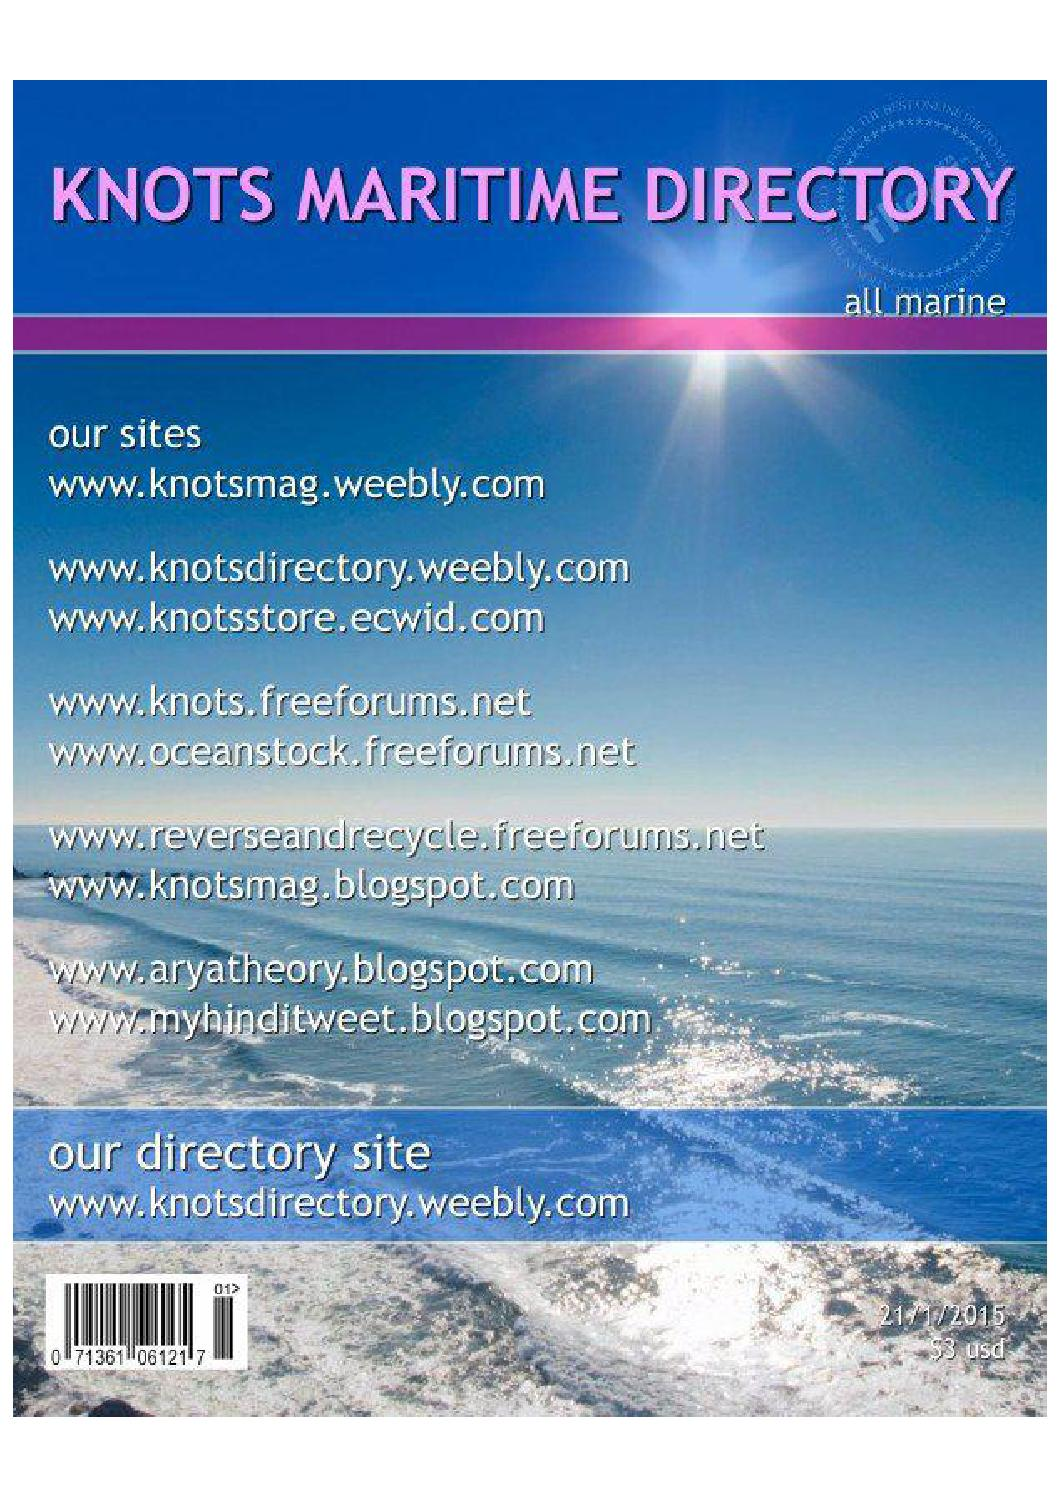 knots maritime directory by anant saxena - issuu